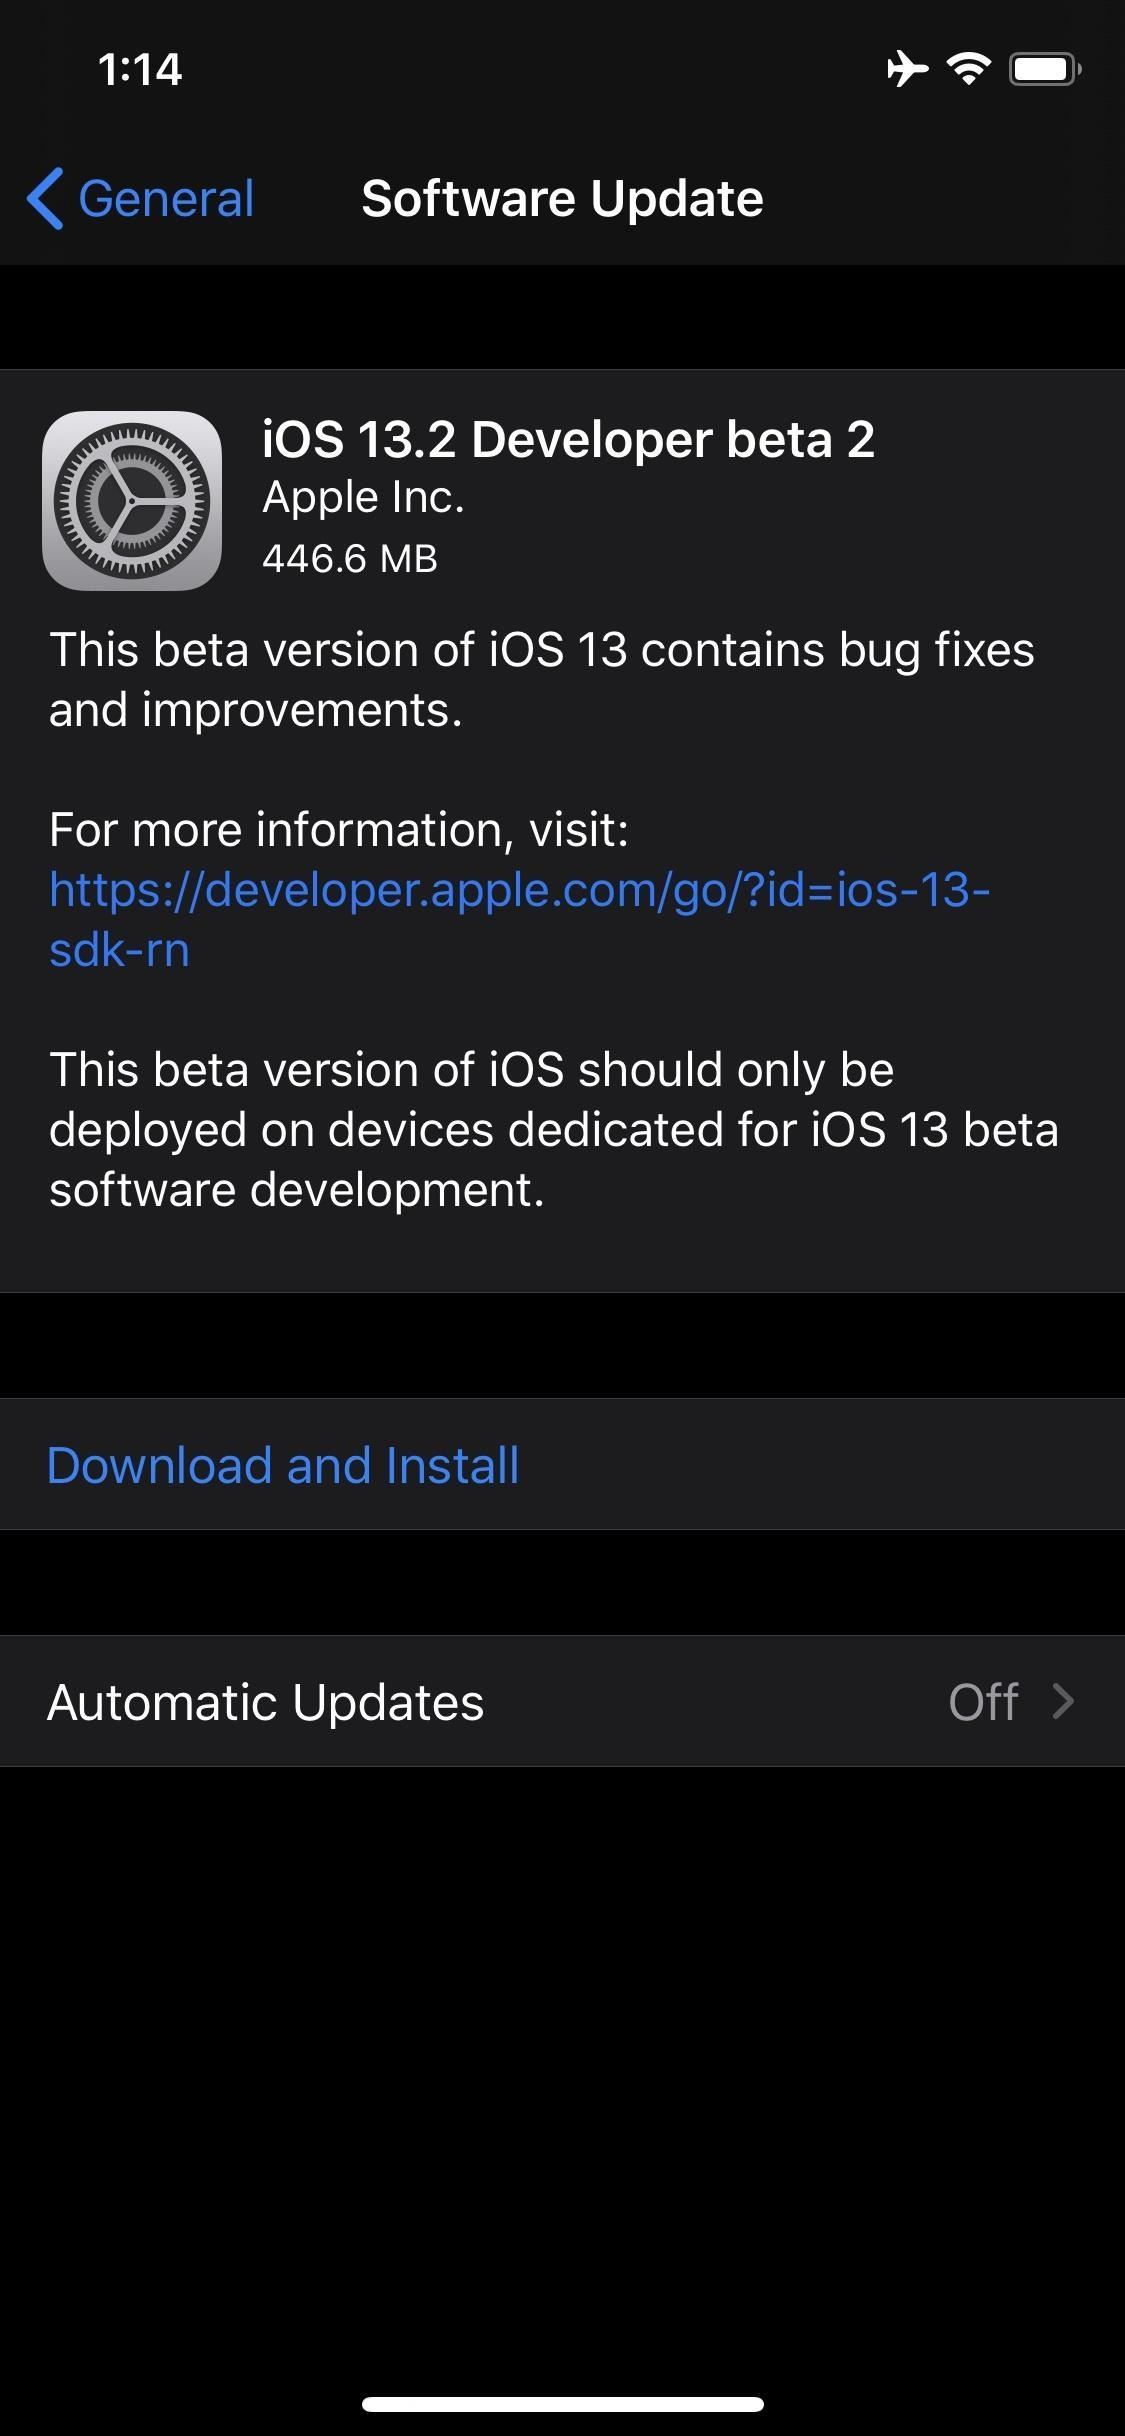 Apple Released iOS 13.2 Developer Beta 2 for iPhone Introduces New Emoji